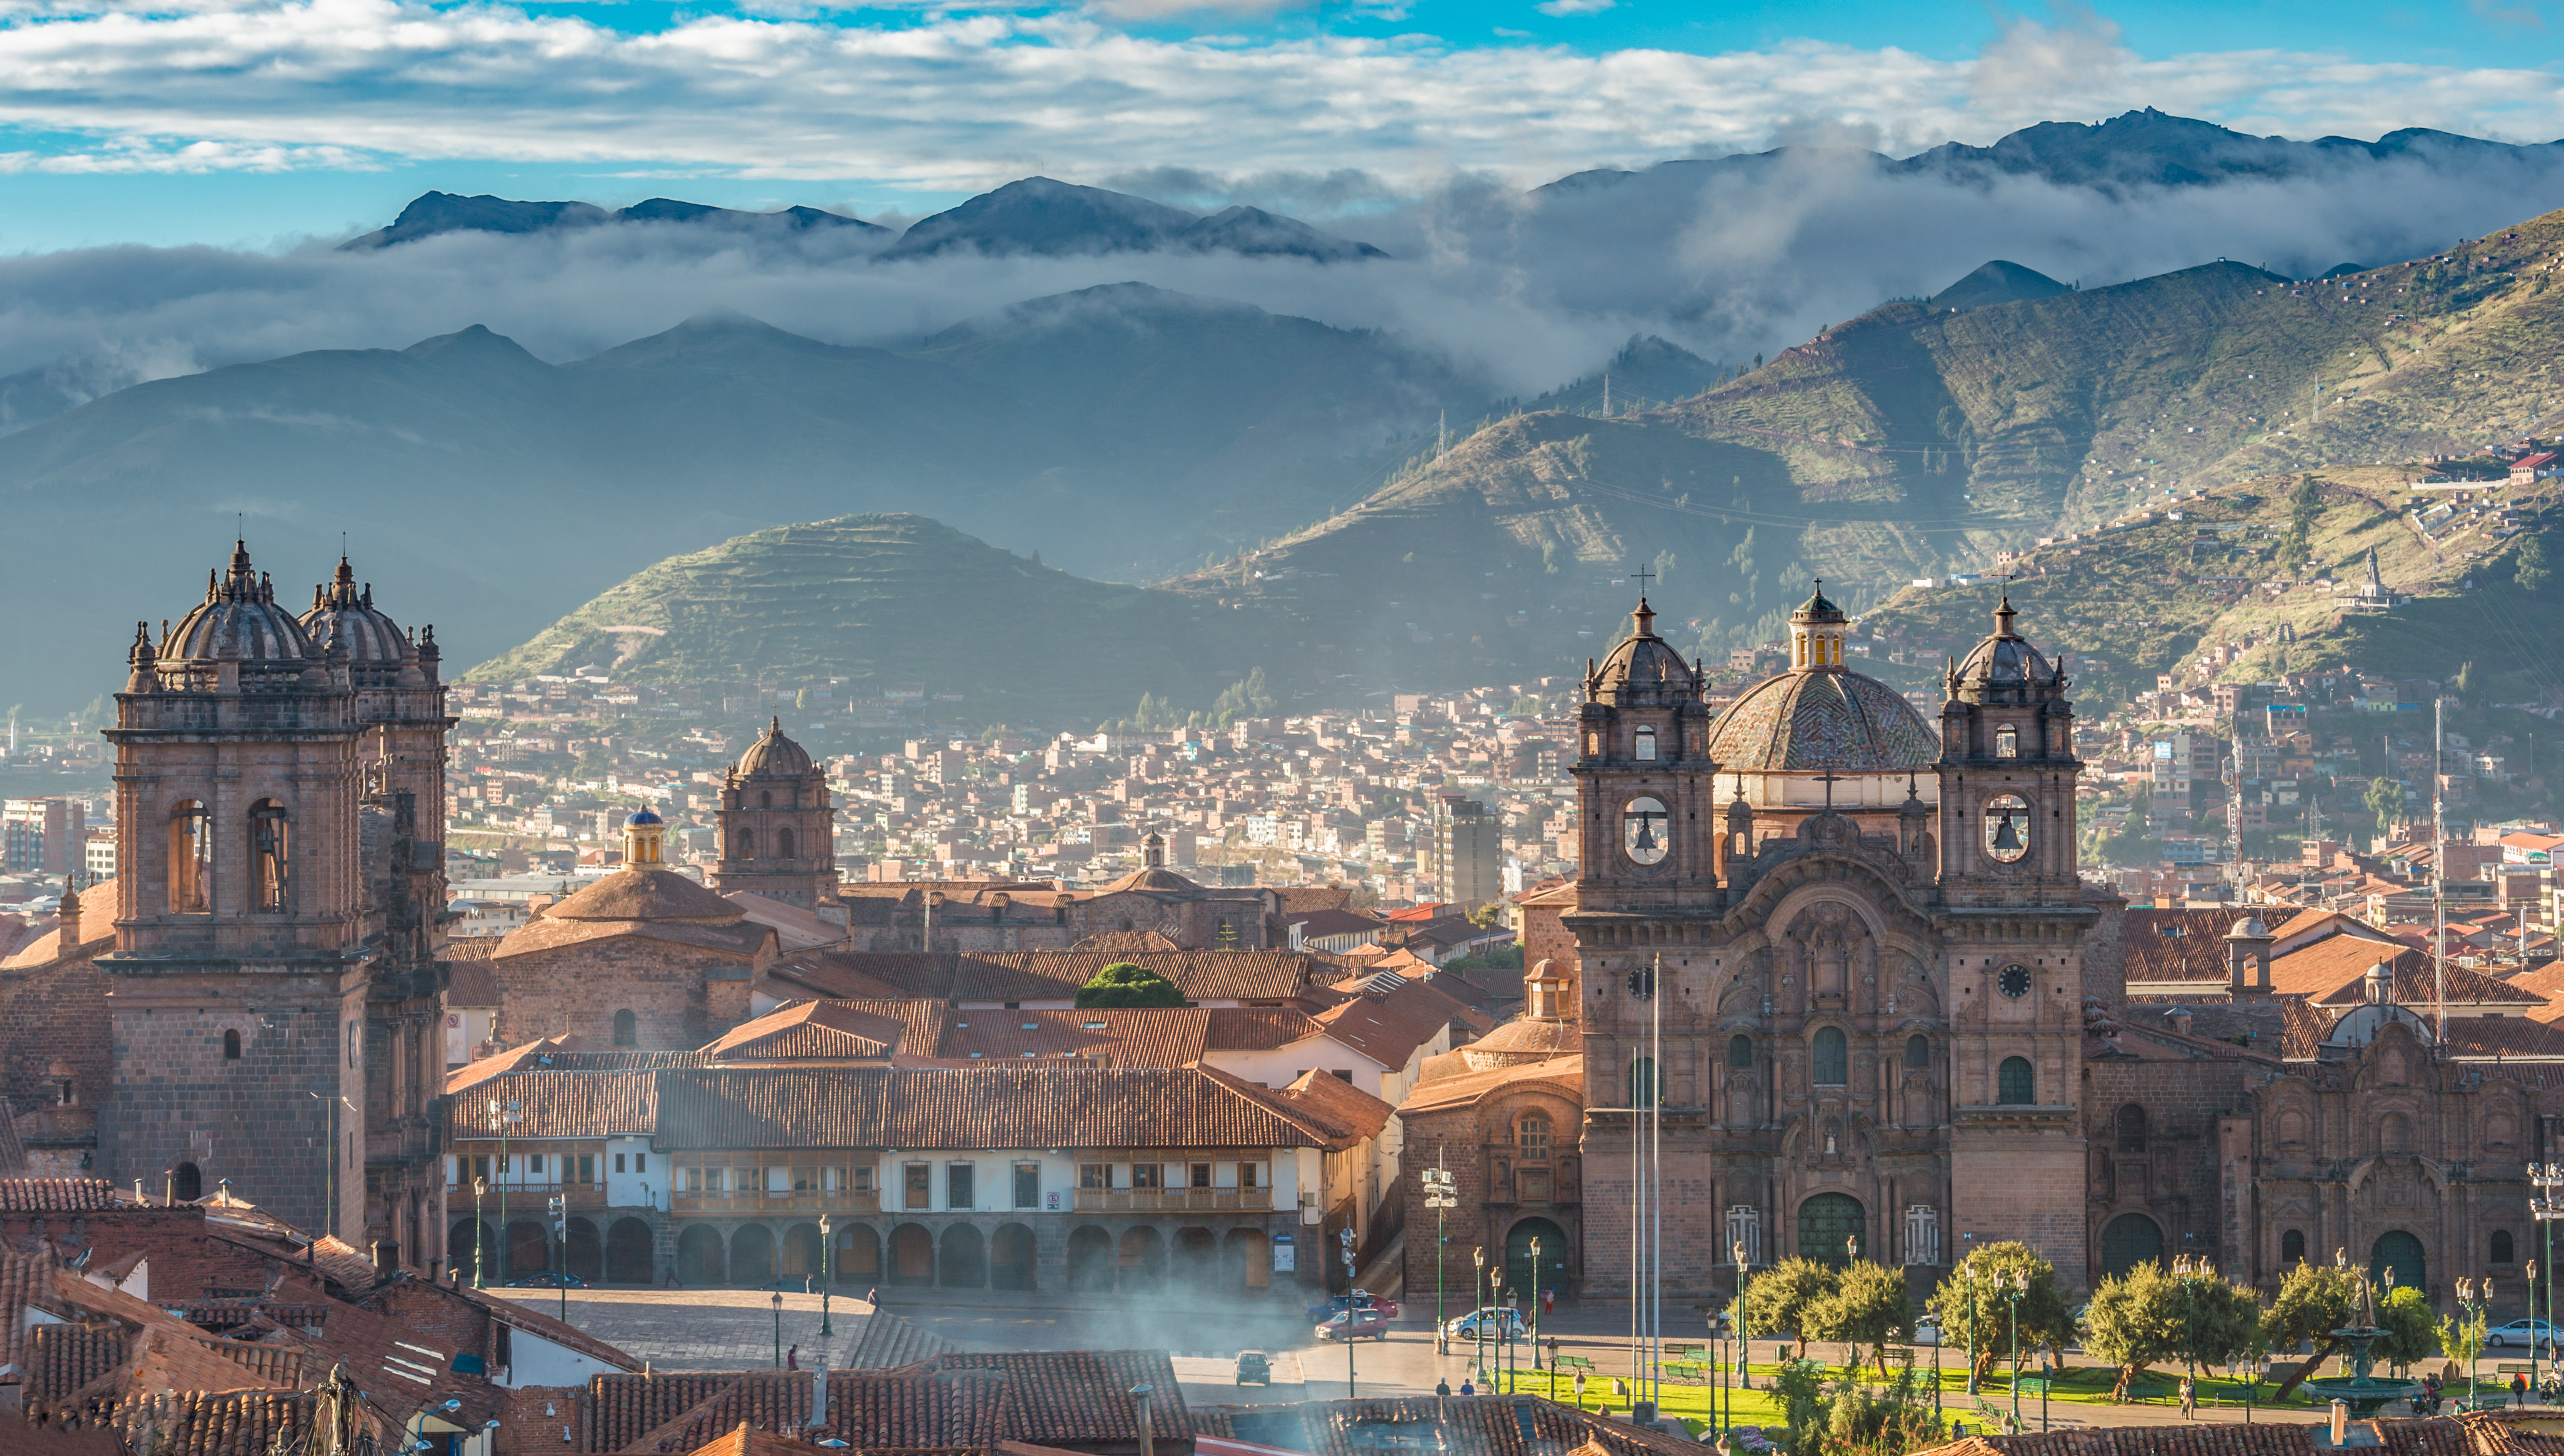 Morning sun rising at Plaza de armas with Adean Moutain and group of cloud, Cusco, Peru